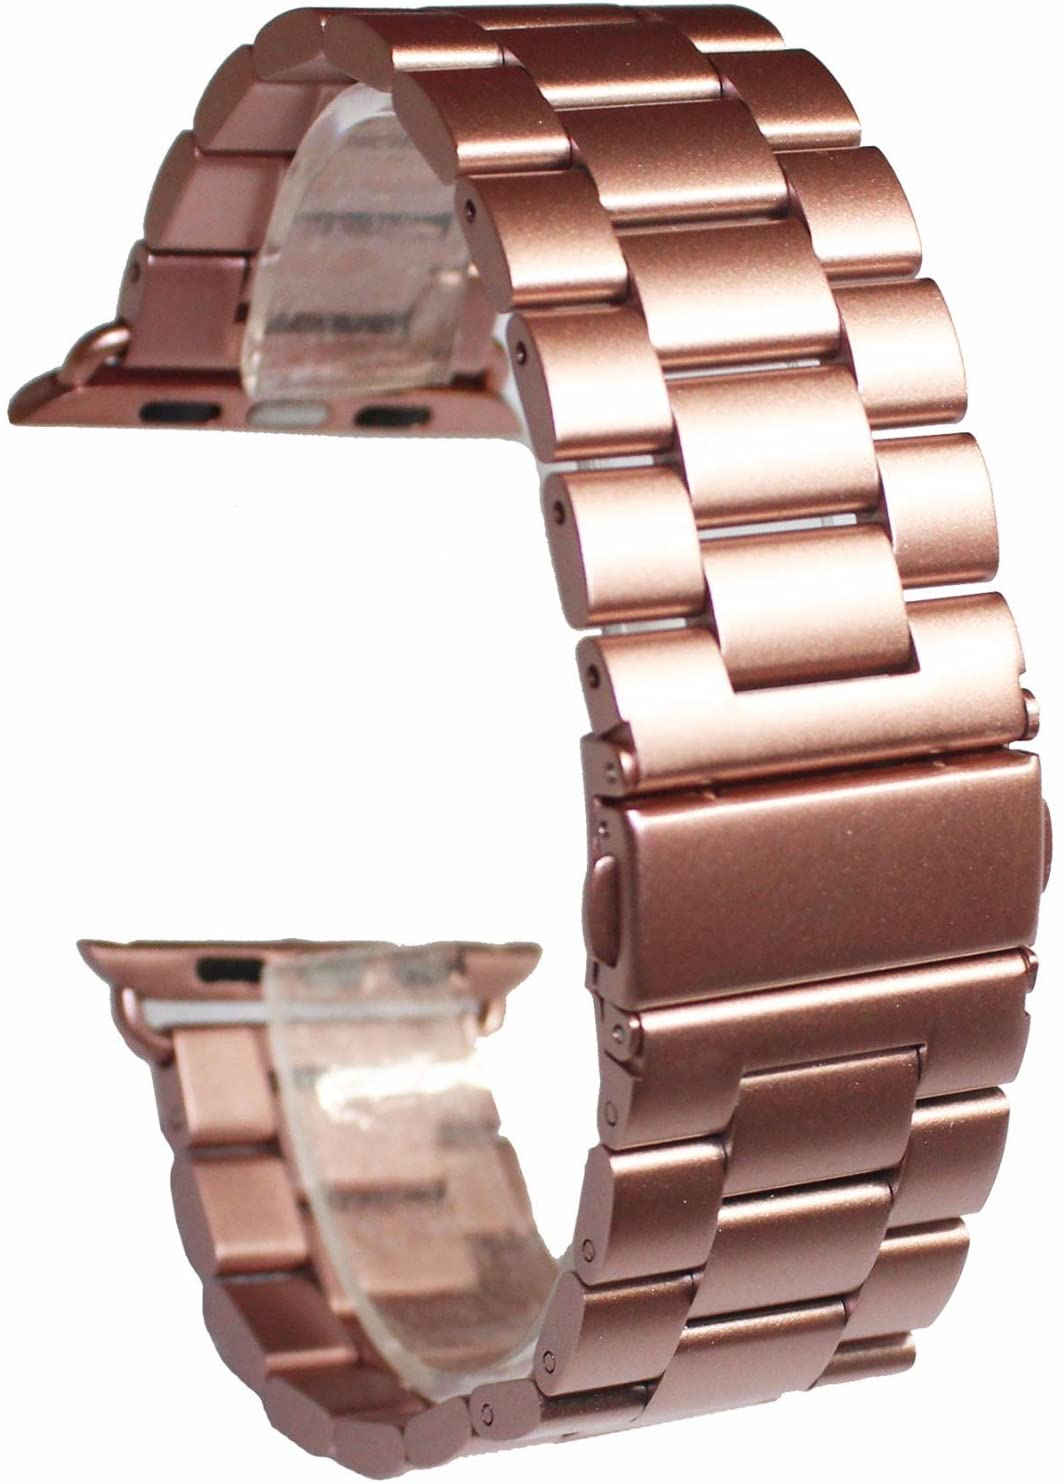 Dahase compatible for Apple Watch Band, Stainless Steel Strap Bracelet Polishing Process Replacement Wristband Watch band for Apple Watch iWatch Series 5 4 3 2 1 All Versions 44mm 42mm Pink Gold